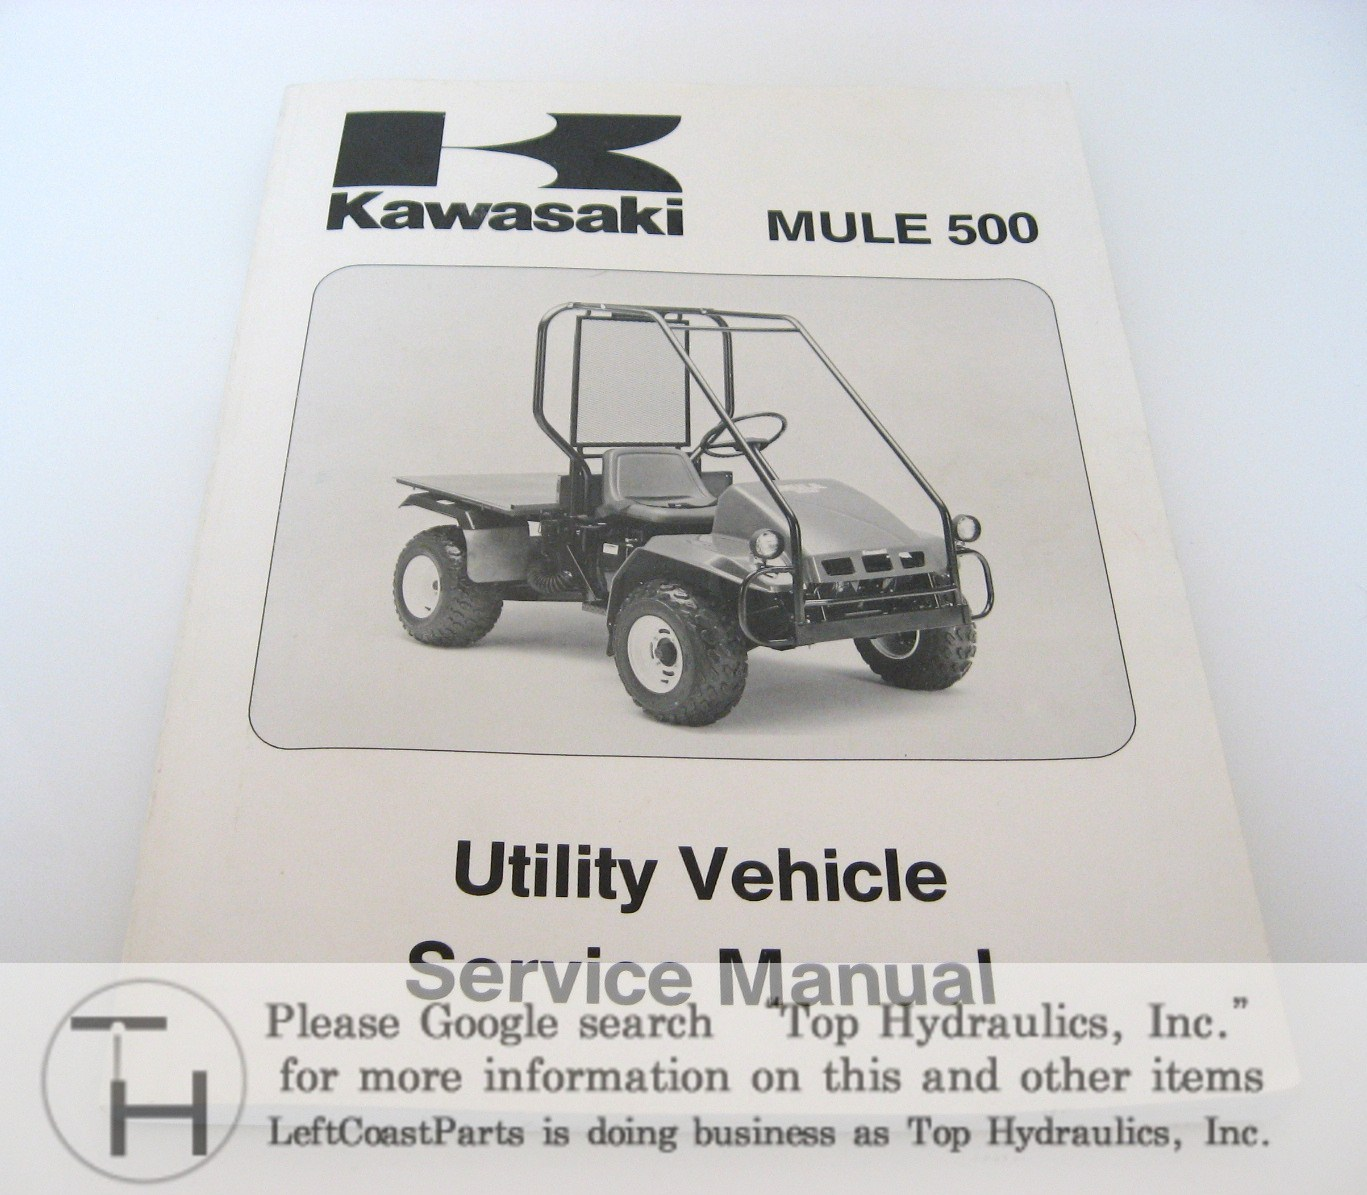 hight resolution of kawasaki er 500 manual general information 1 general specifications items en500 c c en500 c en500 d lubrication system forced lubrication